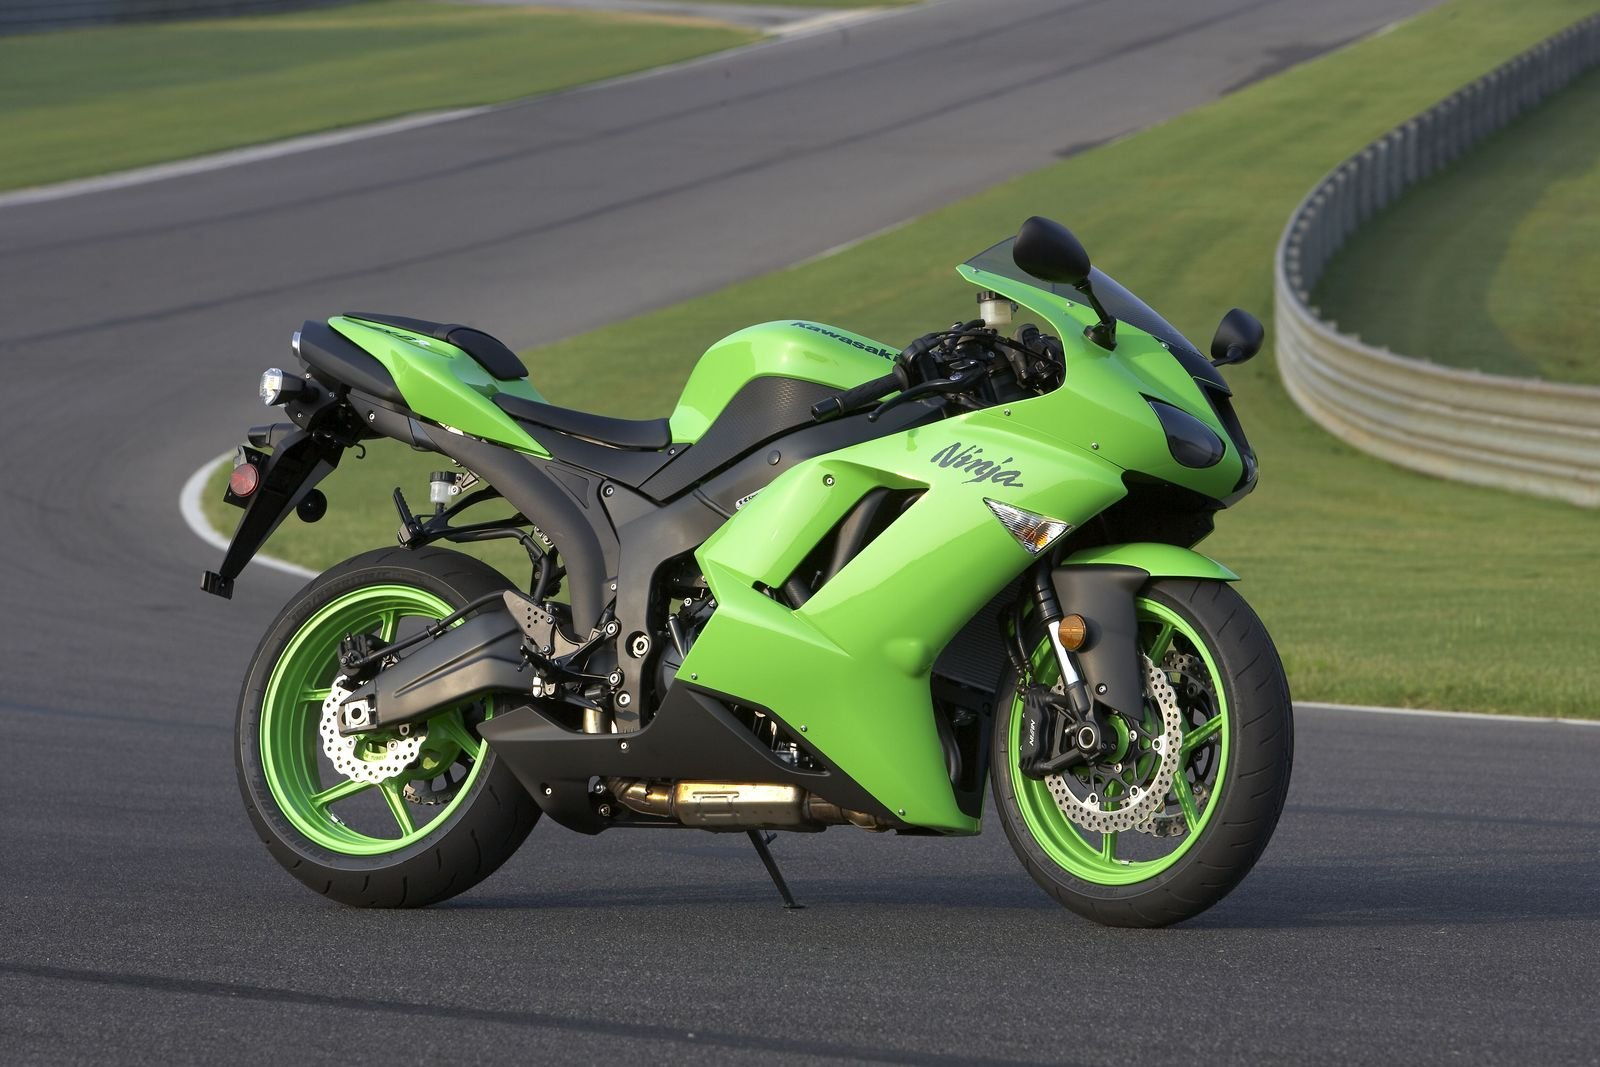 2008 kawasaki ninja zx 6r picture 220730 motorcycle review top speed. Black Bedroom Furniture Sets. Home Design Ideas